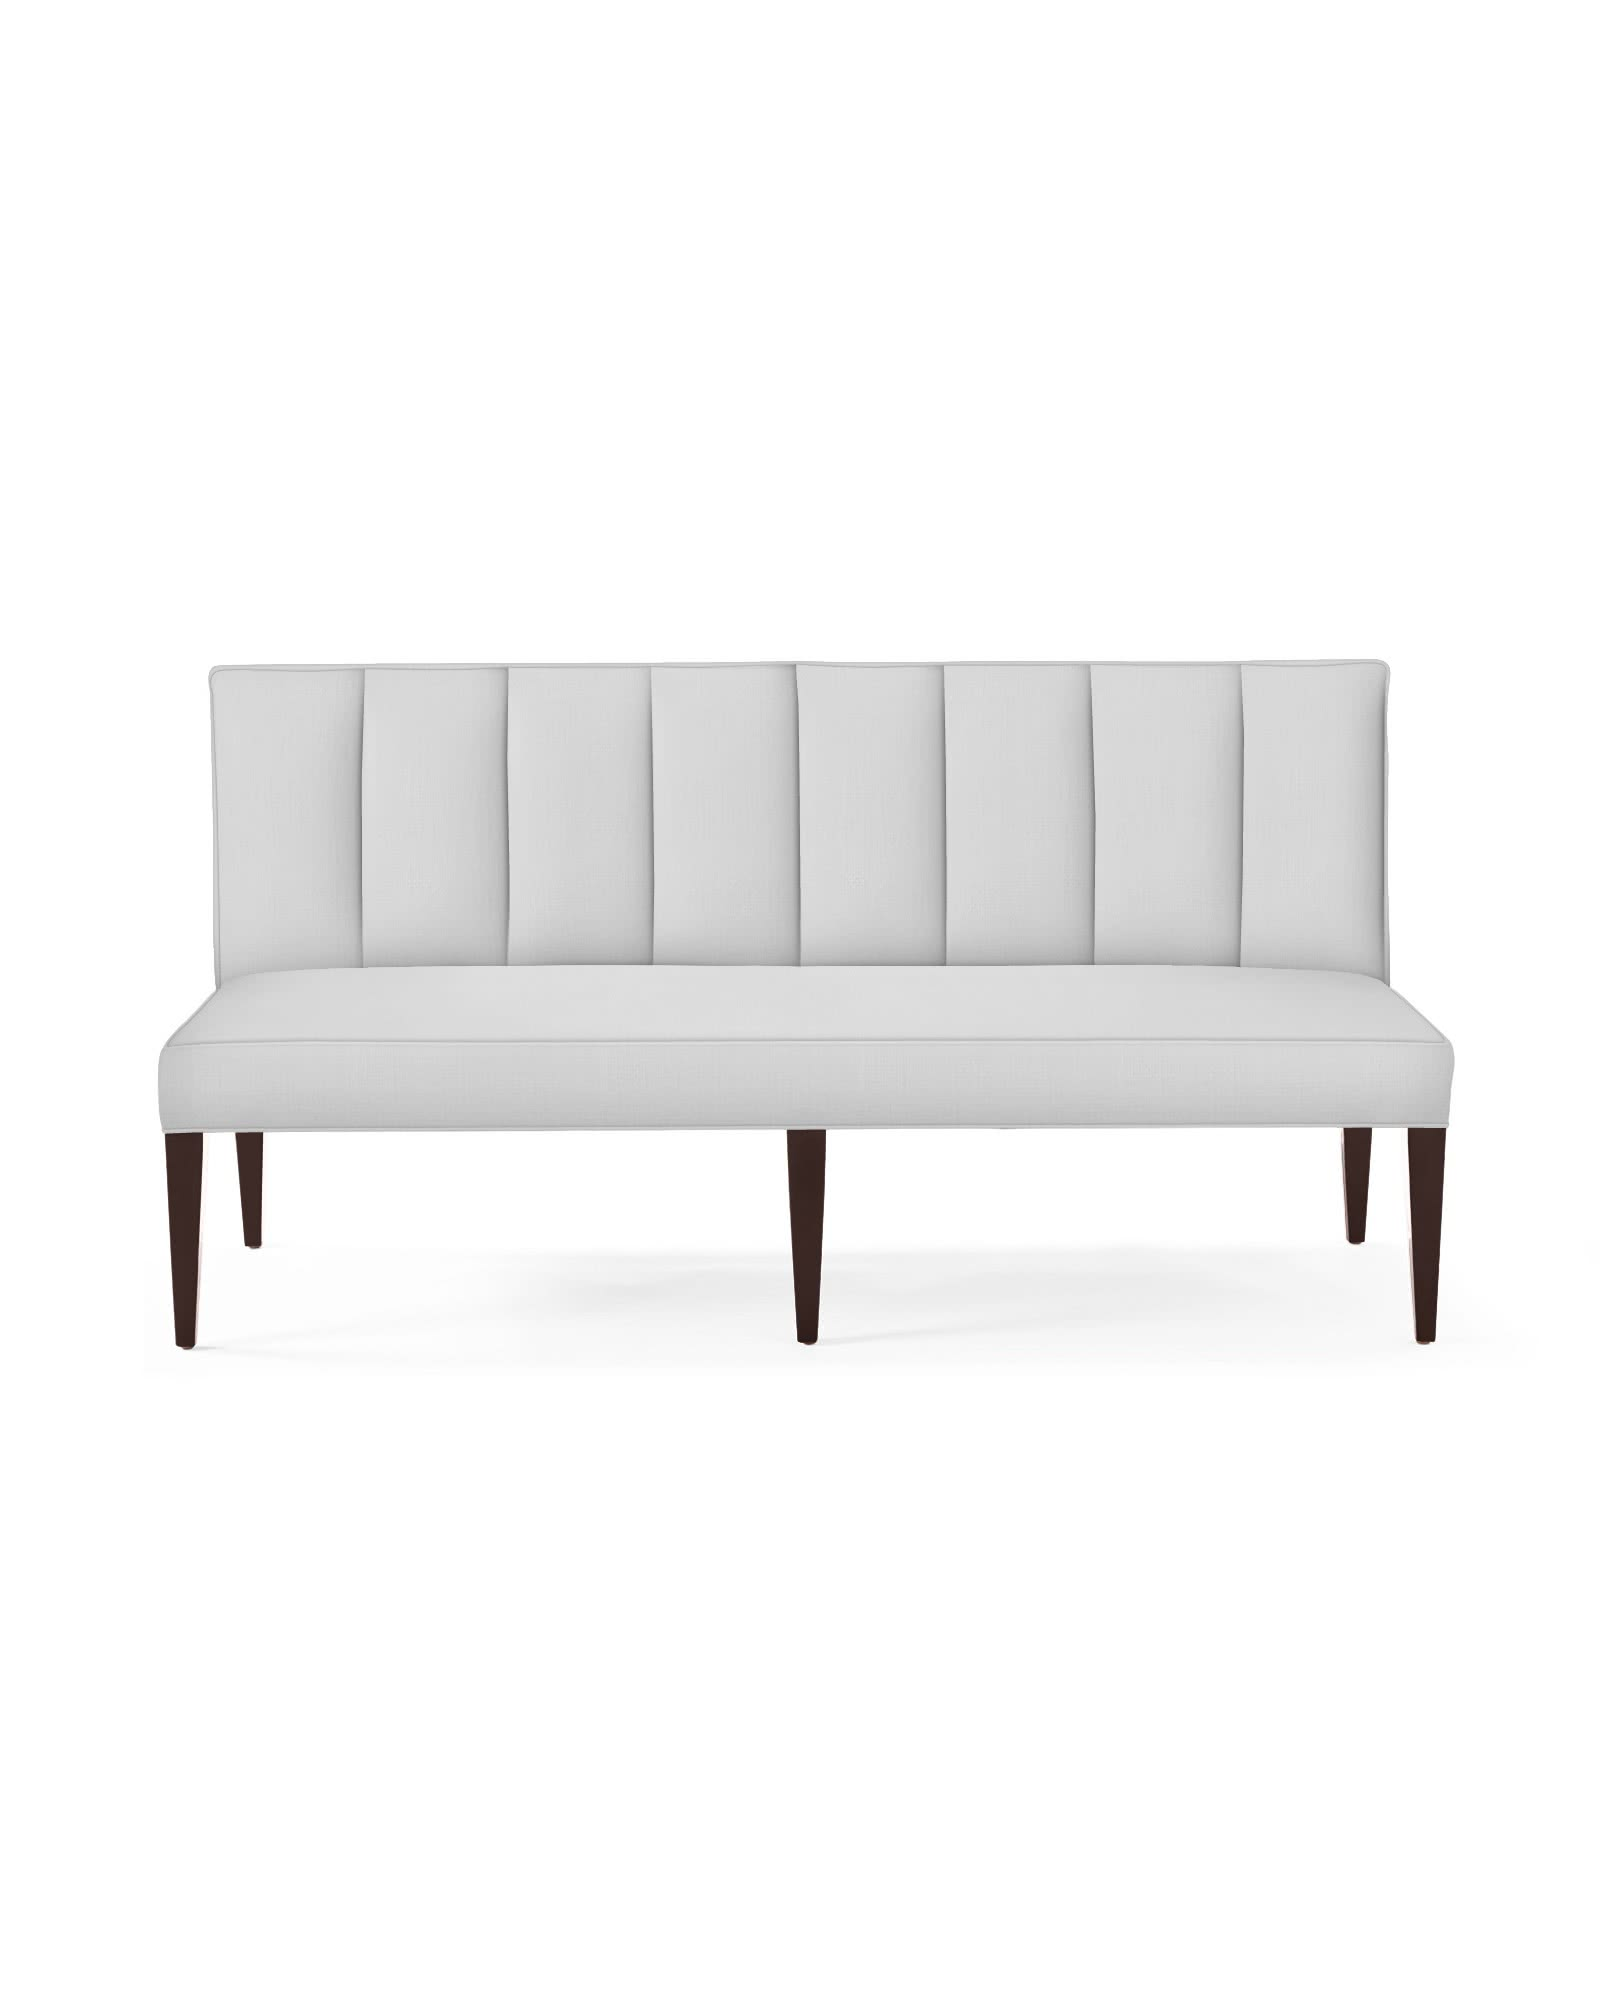 Ross Channeled Dining Bench,